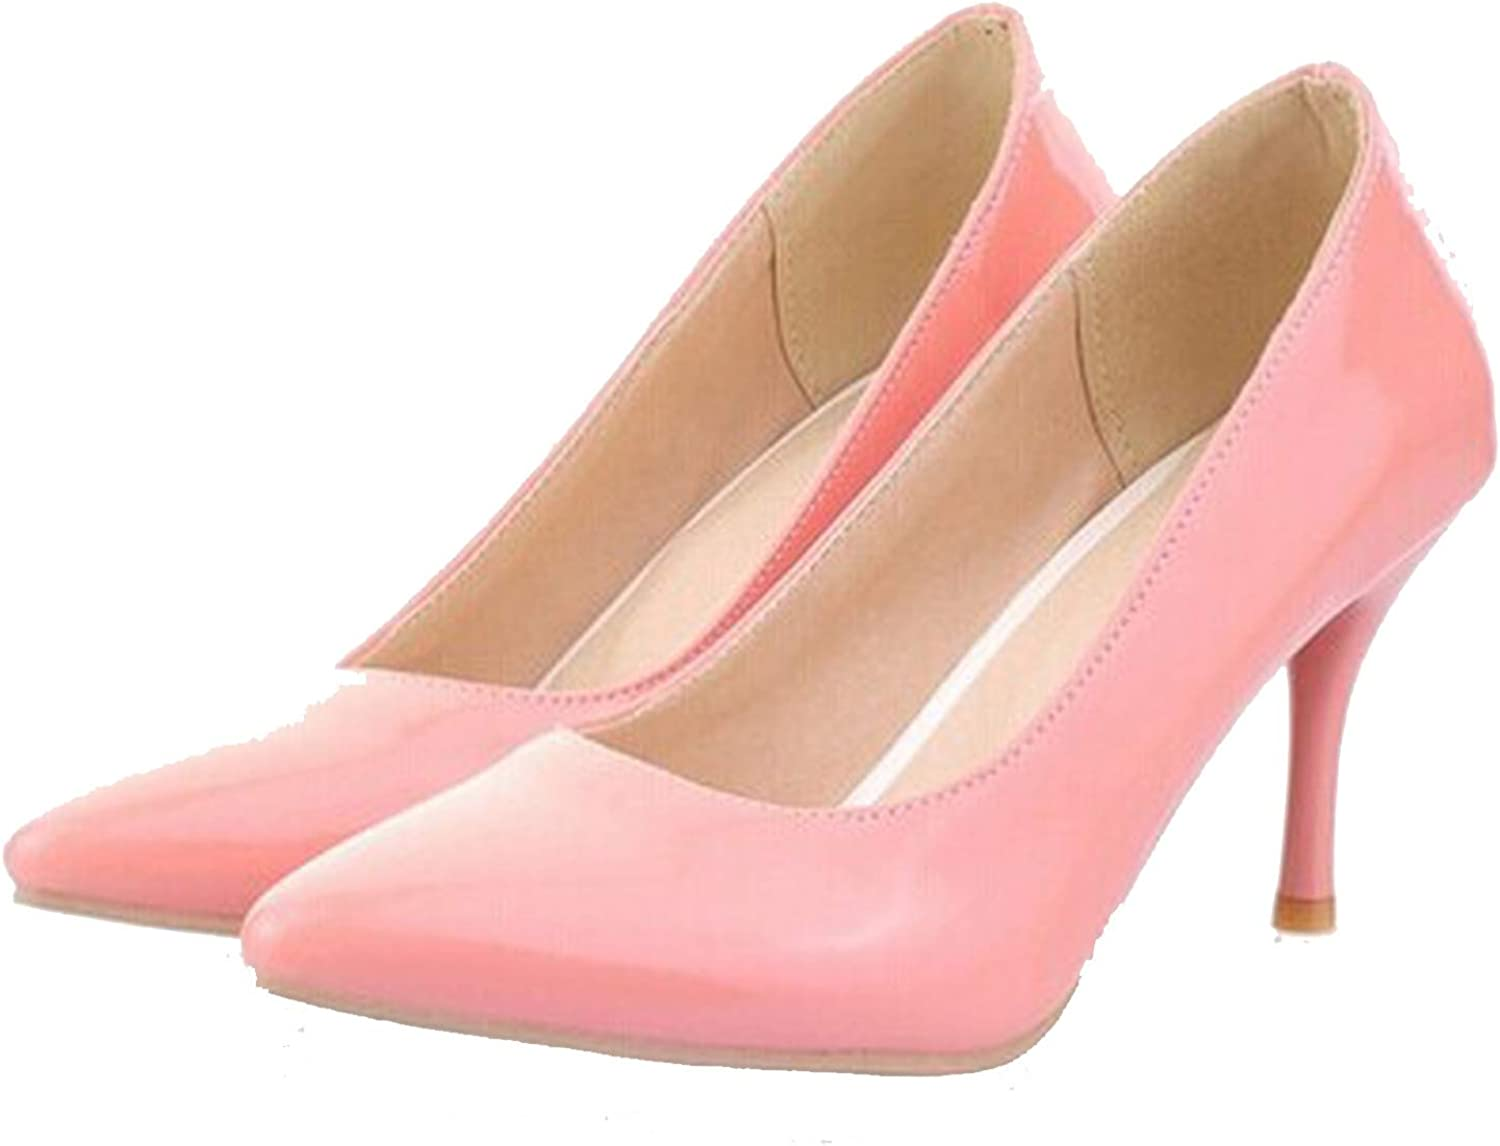 High Heels Women Pumps Thin Heel Classic White red Nude Beige Sexy Ladies Wedding shoes,Pink,6